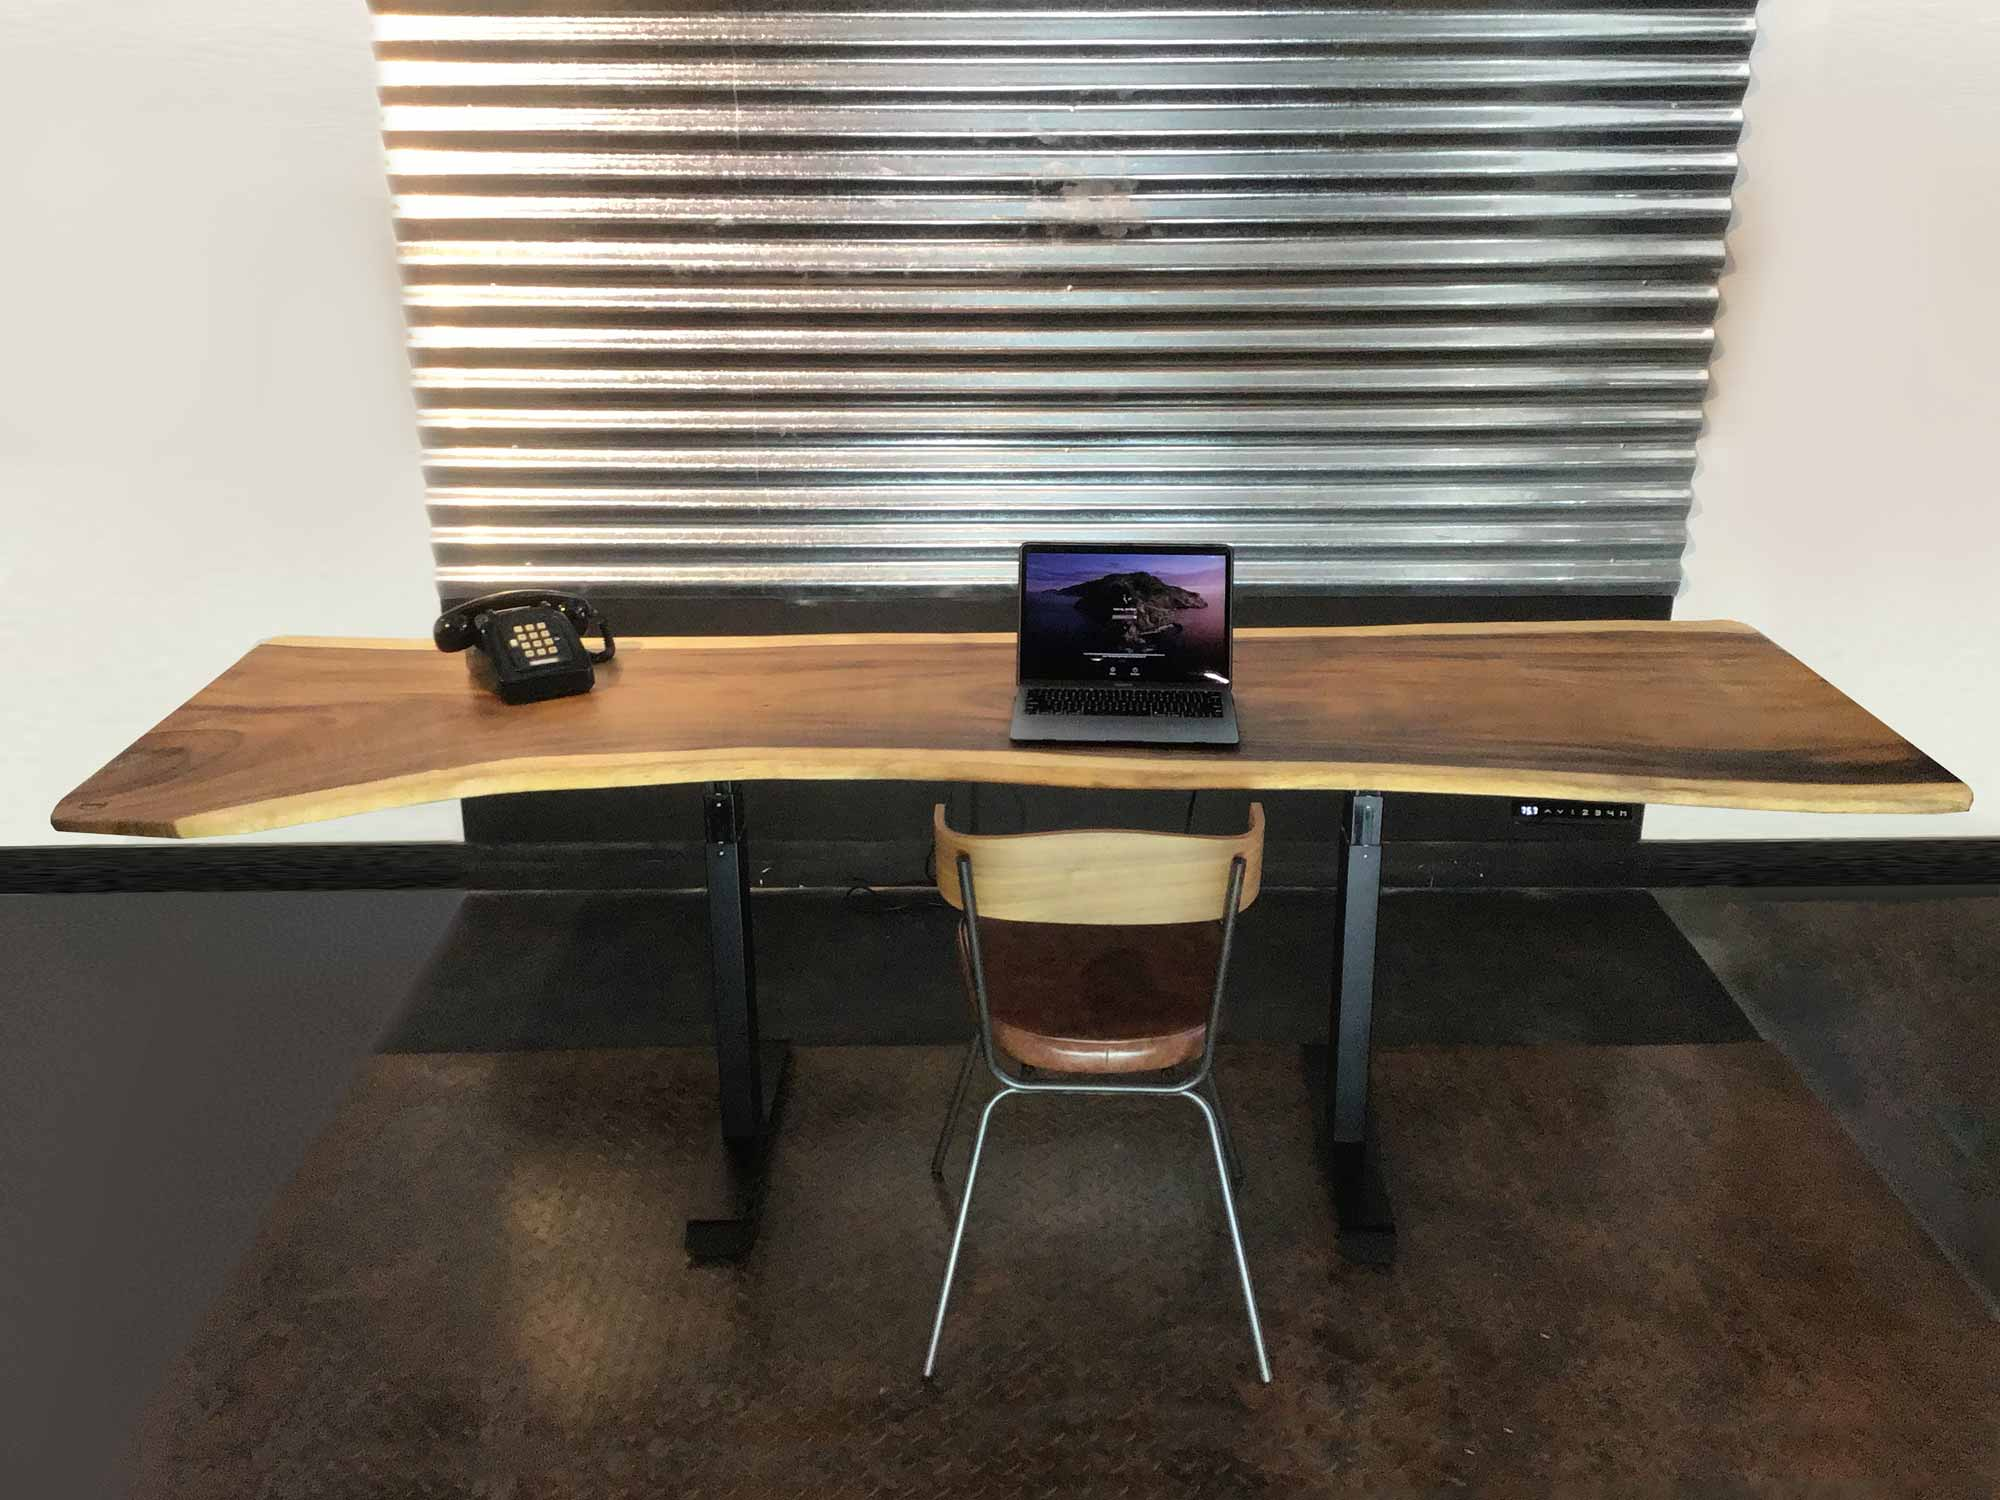 Live edge Suar wood table with wooden chair office set-up